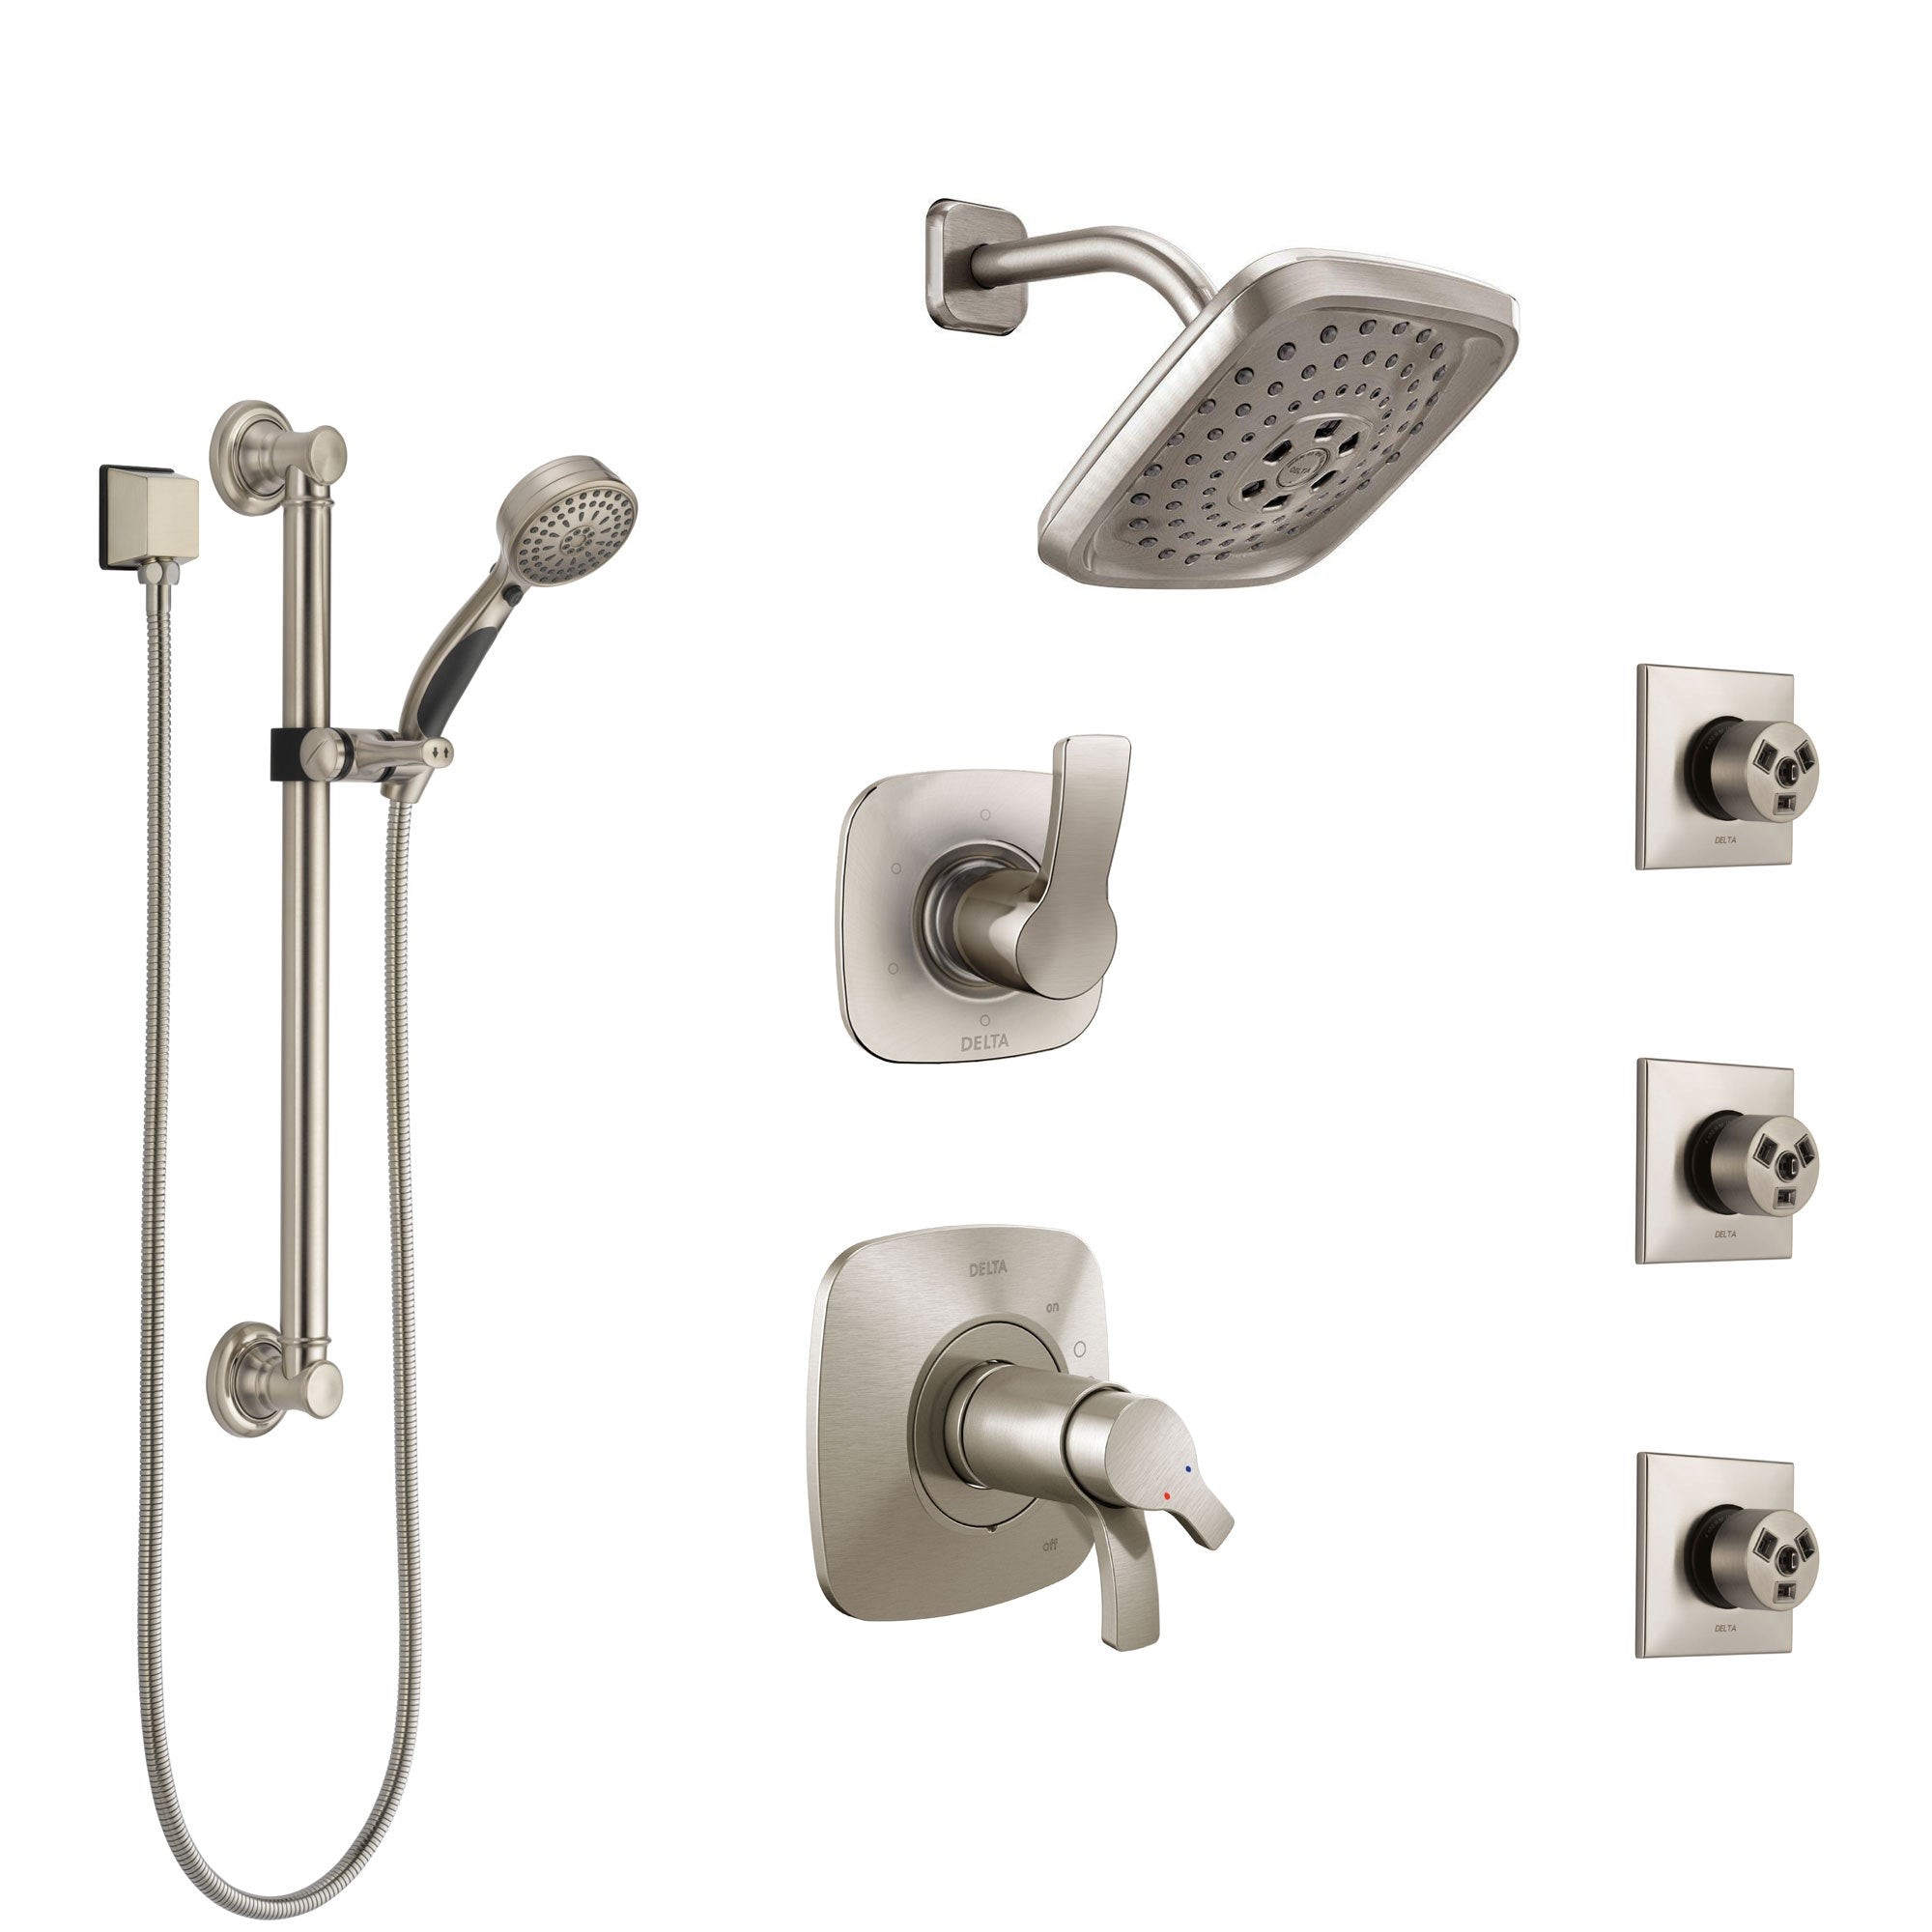 Delta Tesla Dual Thermostatic Control Stainless Steel Finish Shower System, Diverter, Showerhead, 3 Body Sprays, and Grab Bar Hand Shower SS17T2521SS1